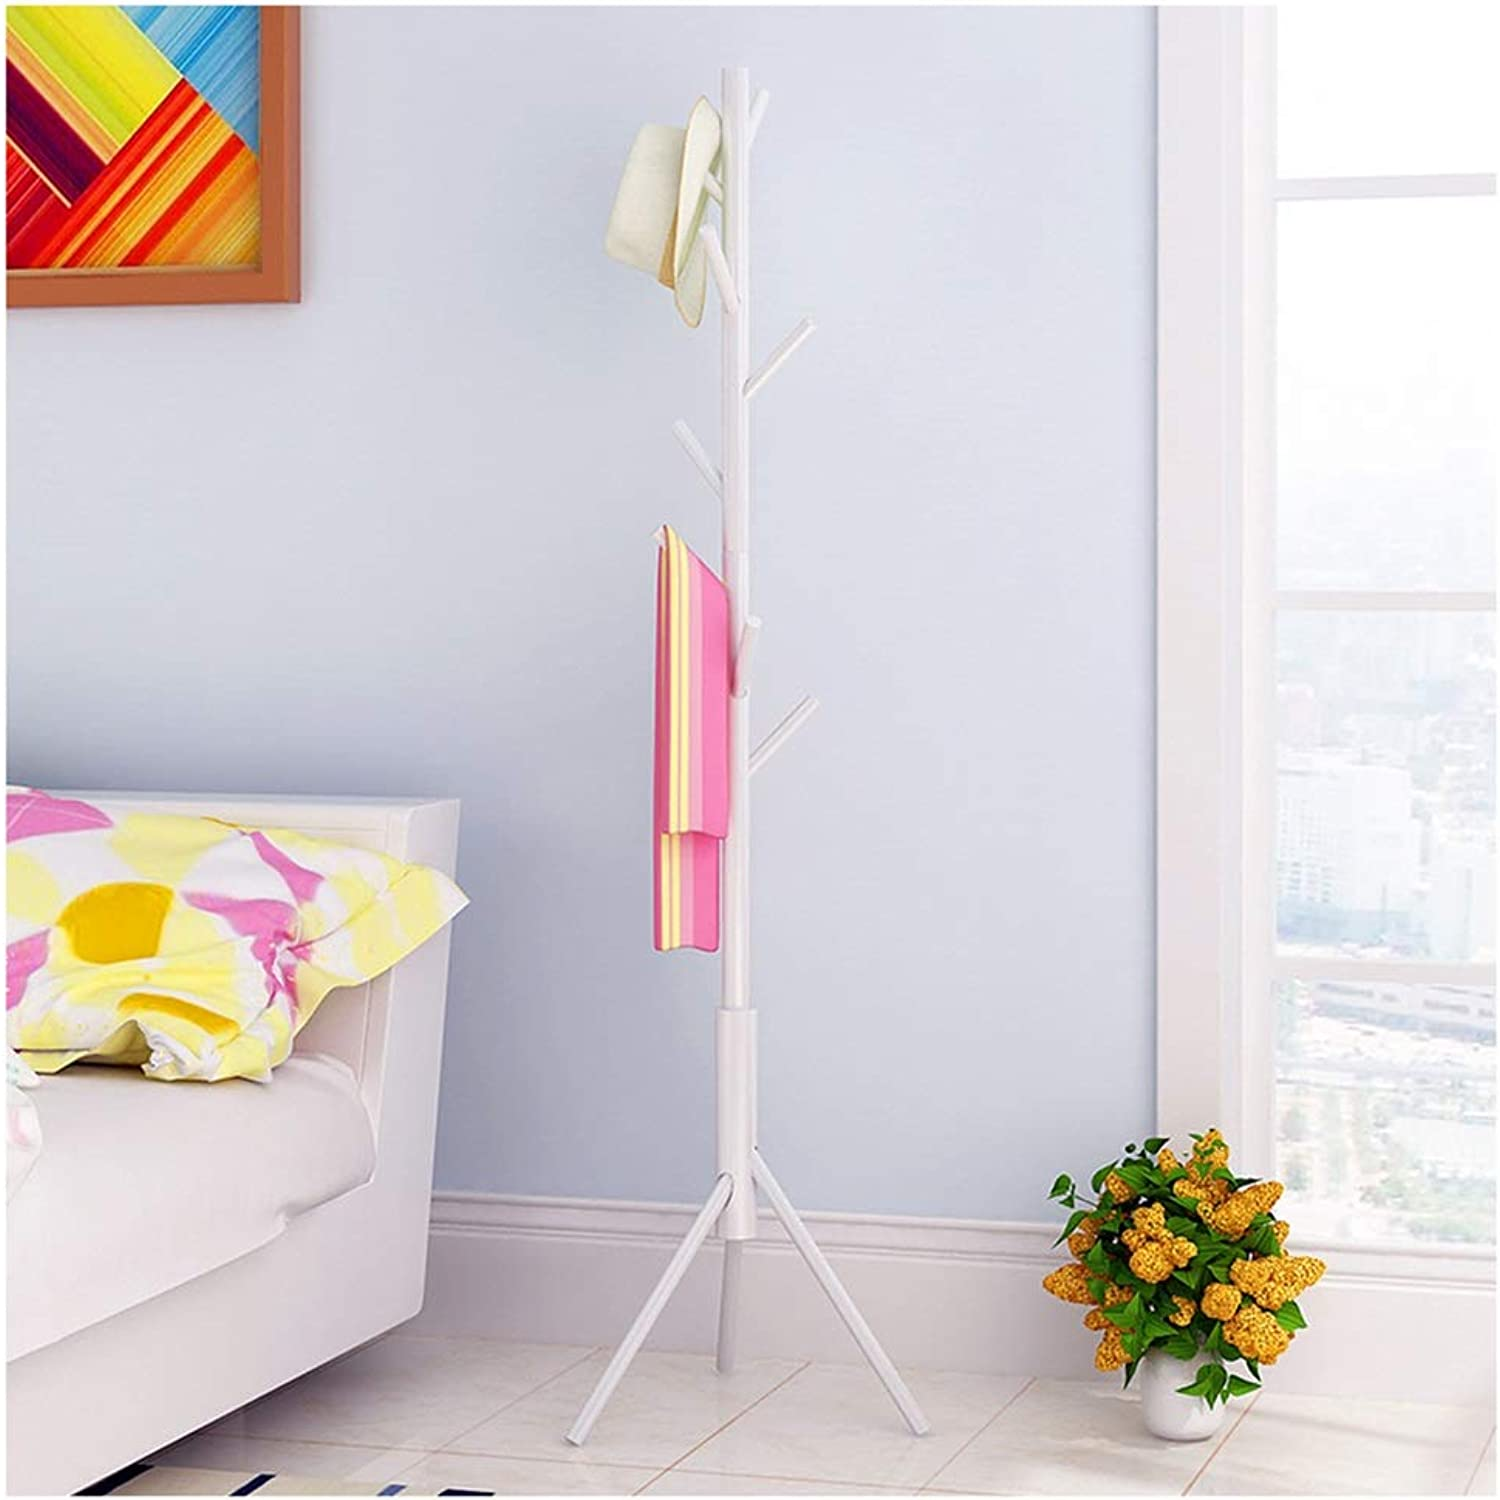 Standing Coat Racks Standing Coat Rack Clothes Hooks Heavy Duty redating Coat Stand Hanger Hall Umbrella Holder Hooks Office Entryway -0223 (color   White)